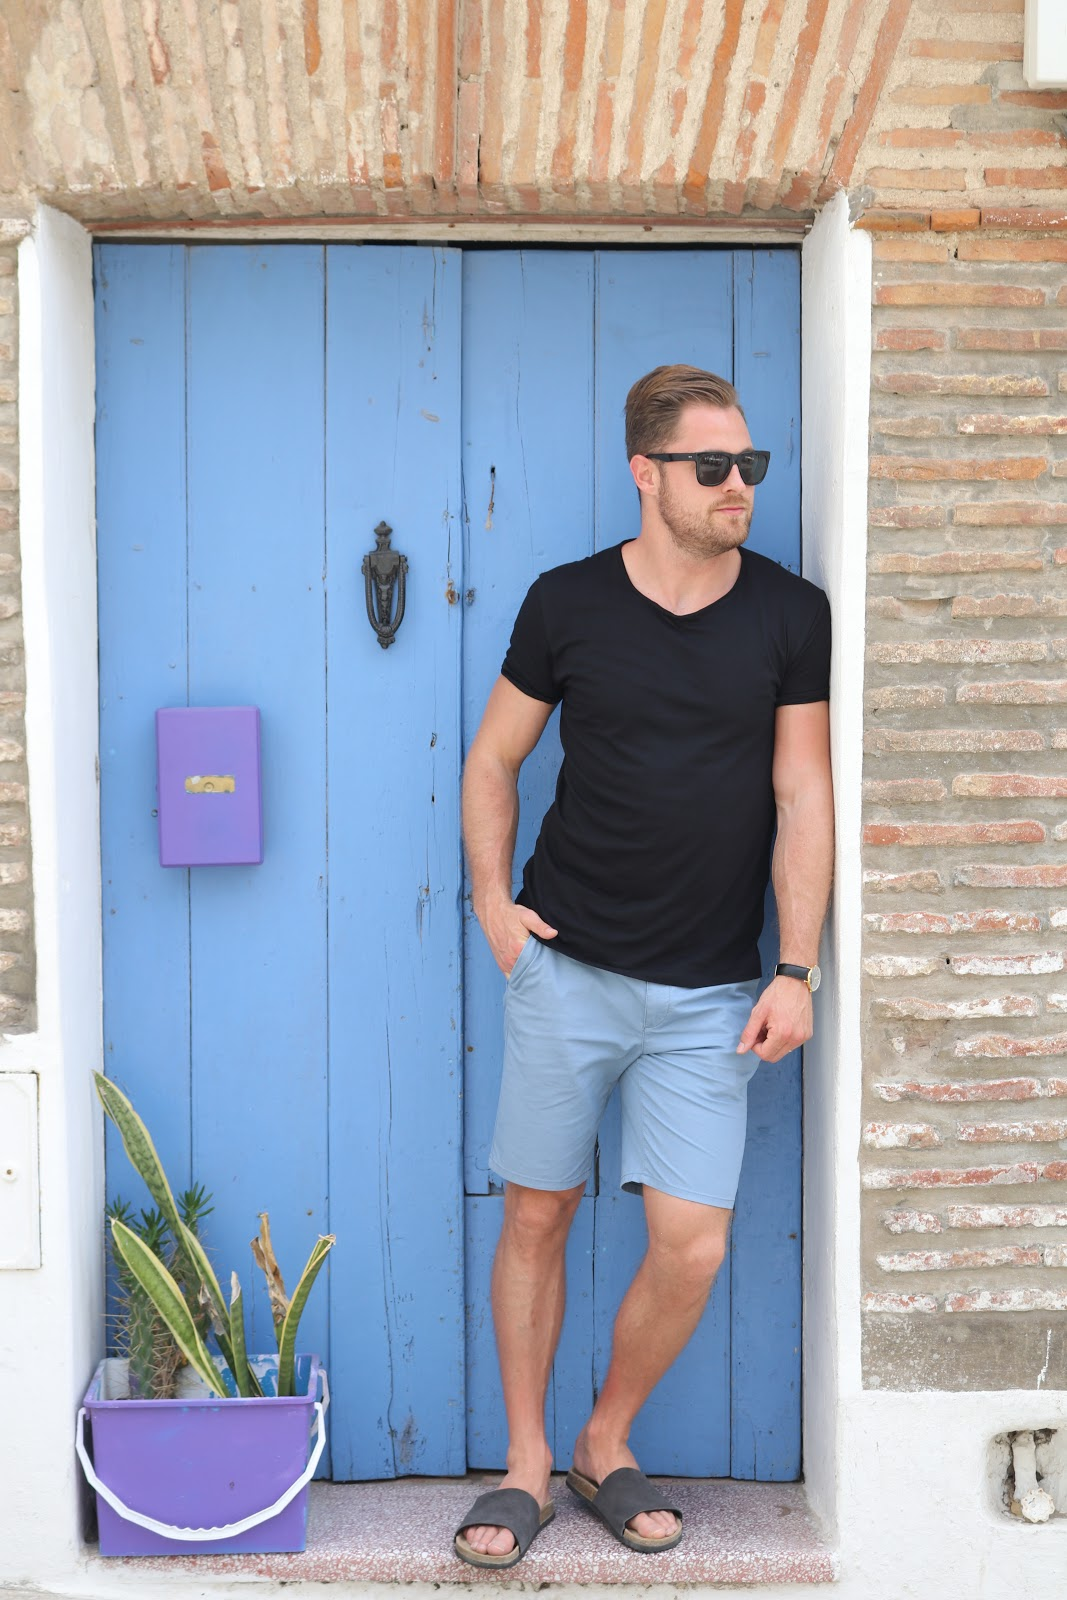 Man wearing black top and blue shorts standing against blue door in Tarifa, Spain